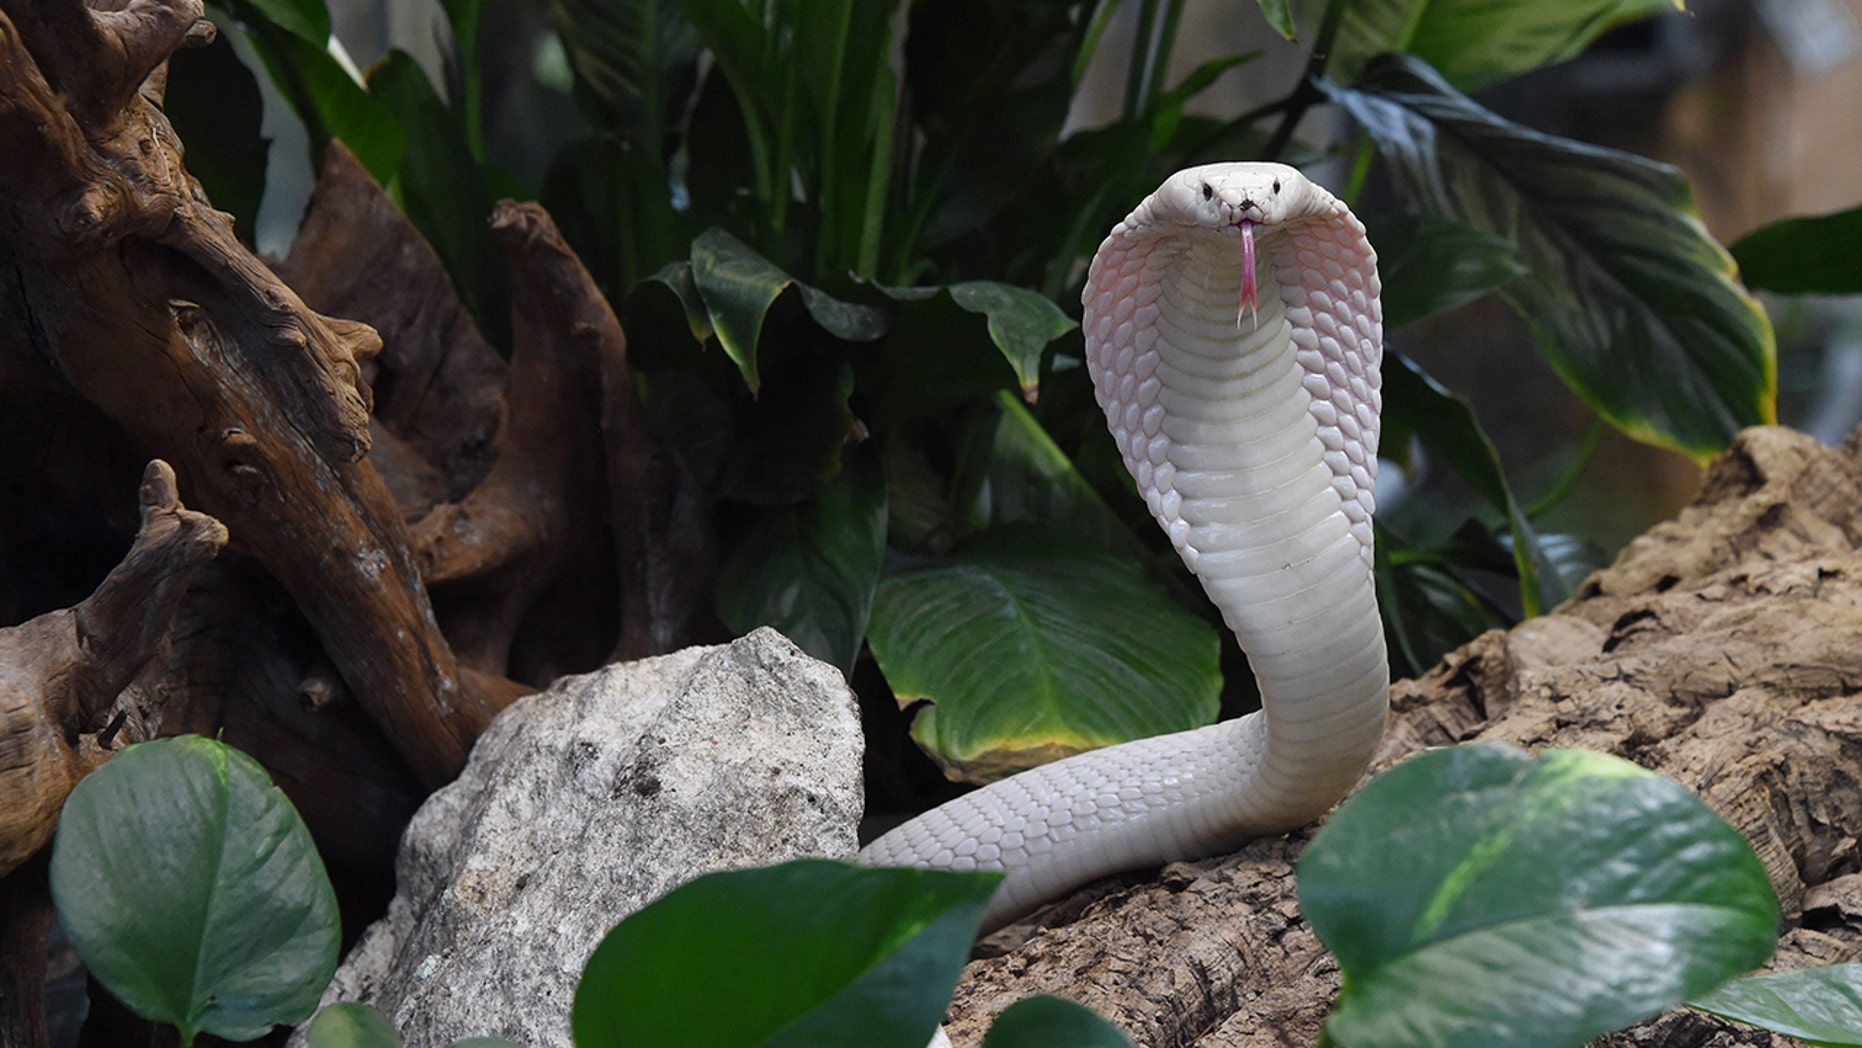 The man, who has not yet been identified, has been hospitalized since his pet pet albino monocled cobra bit him earlier this month.